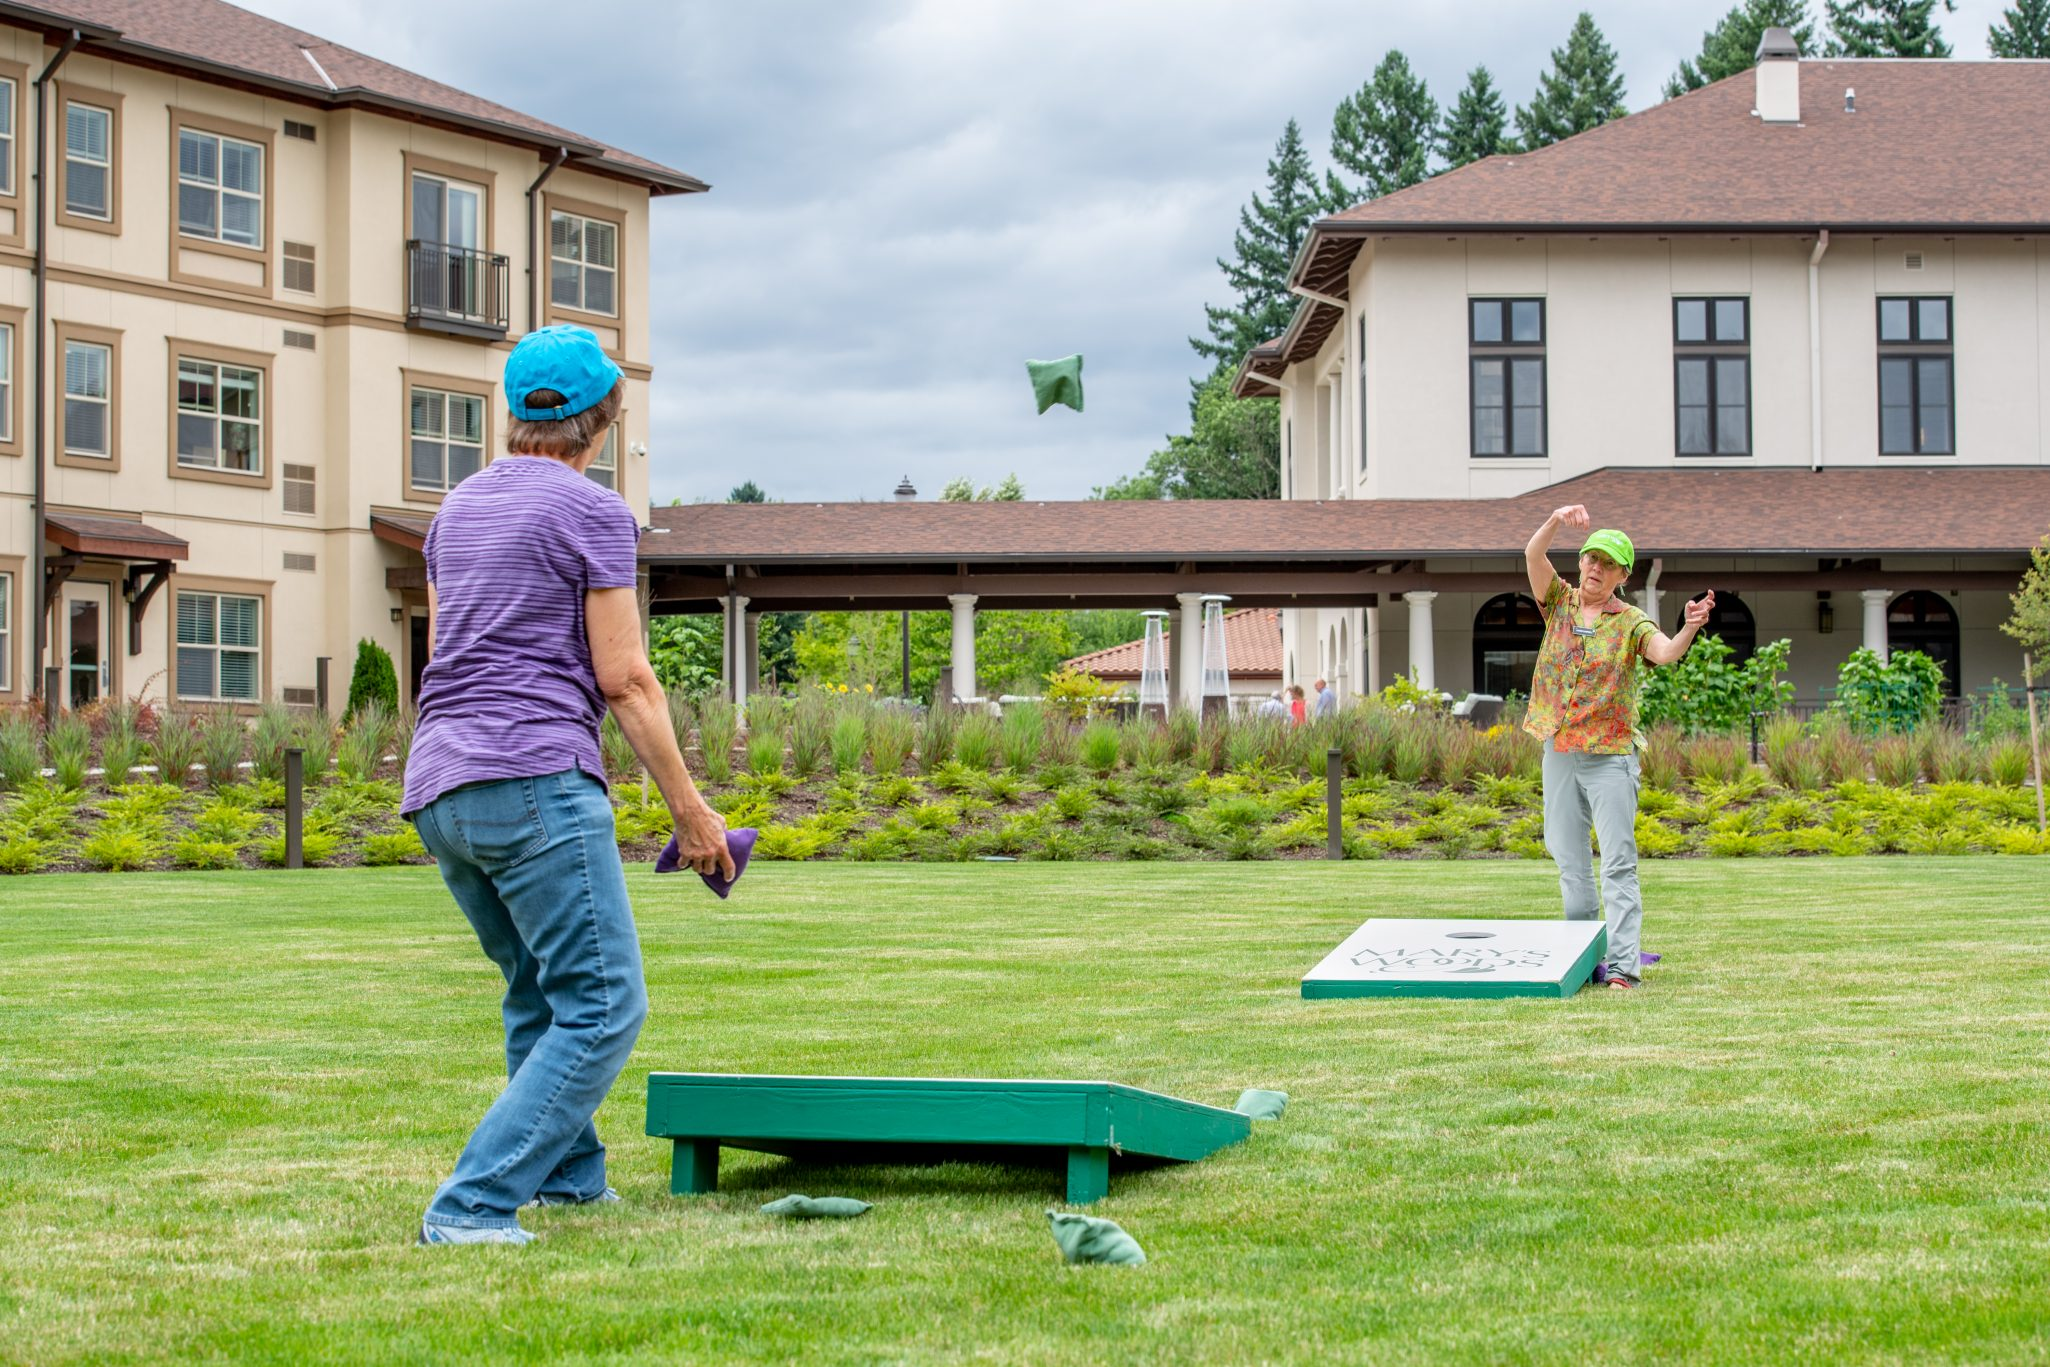 Two people playing lawn games